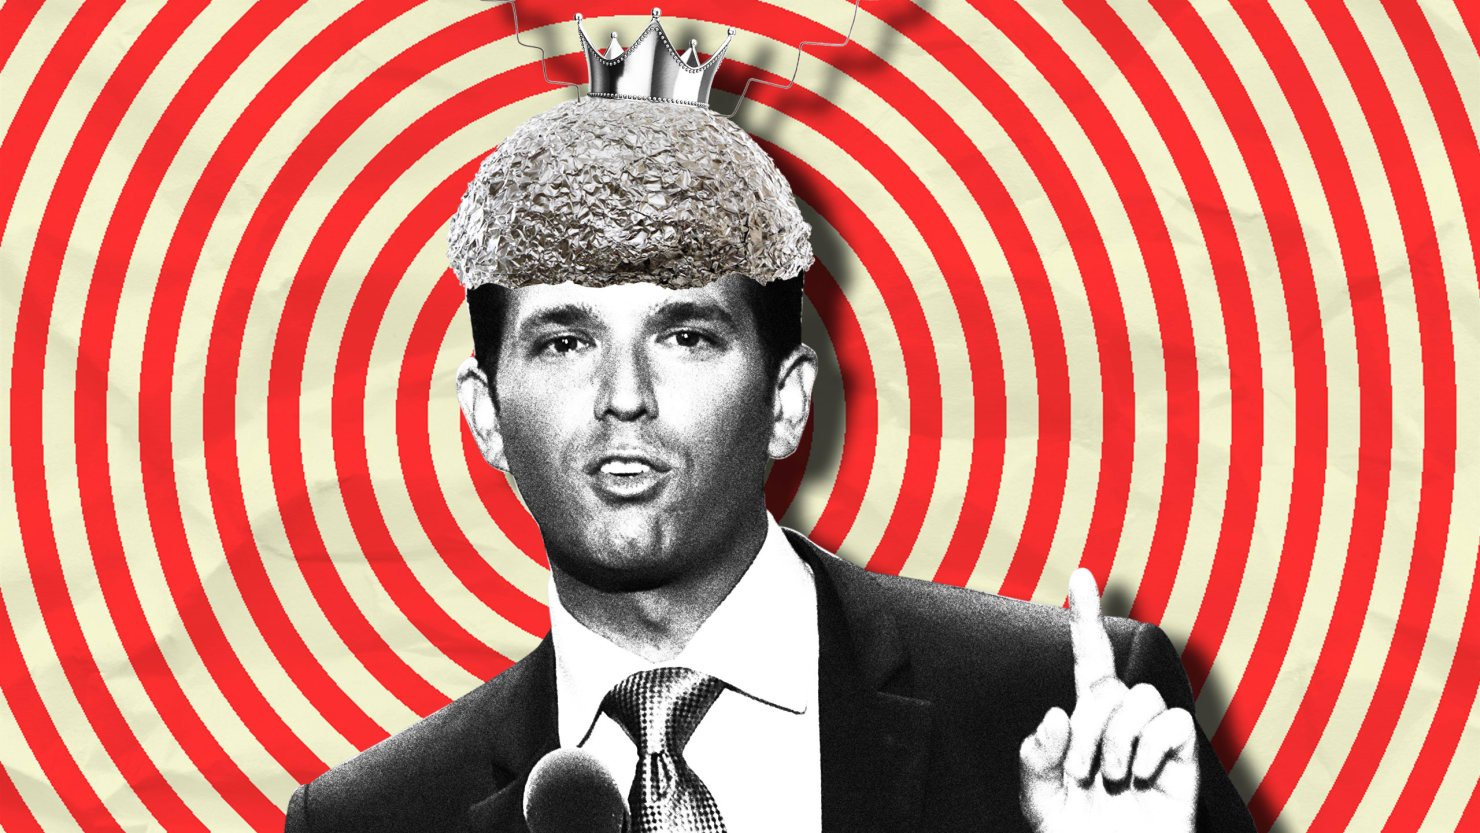 Donald Trump Jr. is a sucker for a good conspiracy theory—or any theory, really. https://t.co/p2XLs9ikHH https://t.co/axg7RedoDF